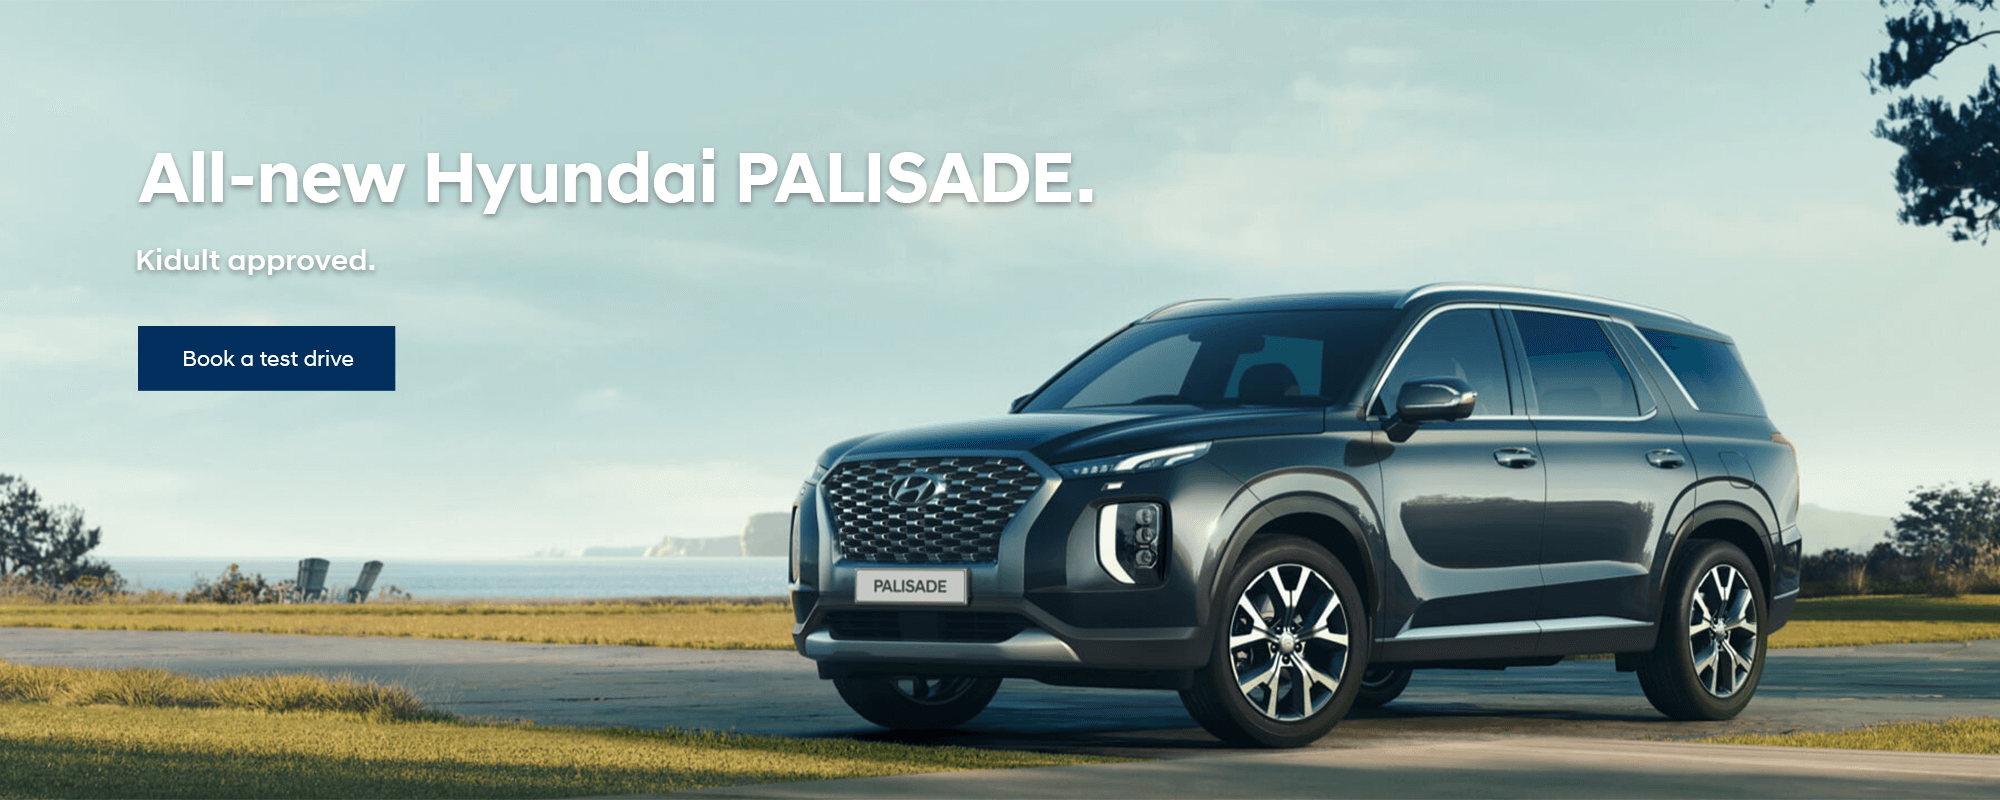 The All-New Hyundai PALISADE. Kidult approved.